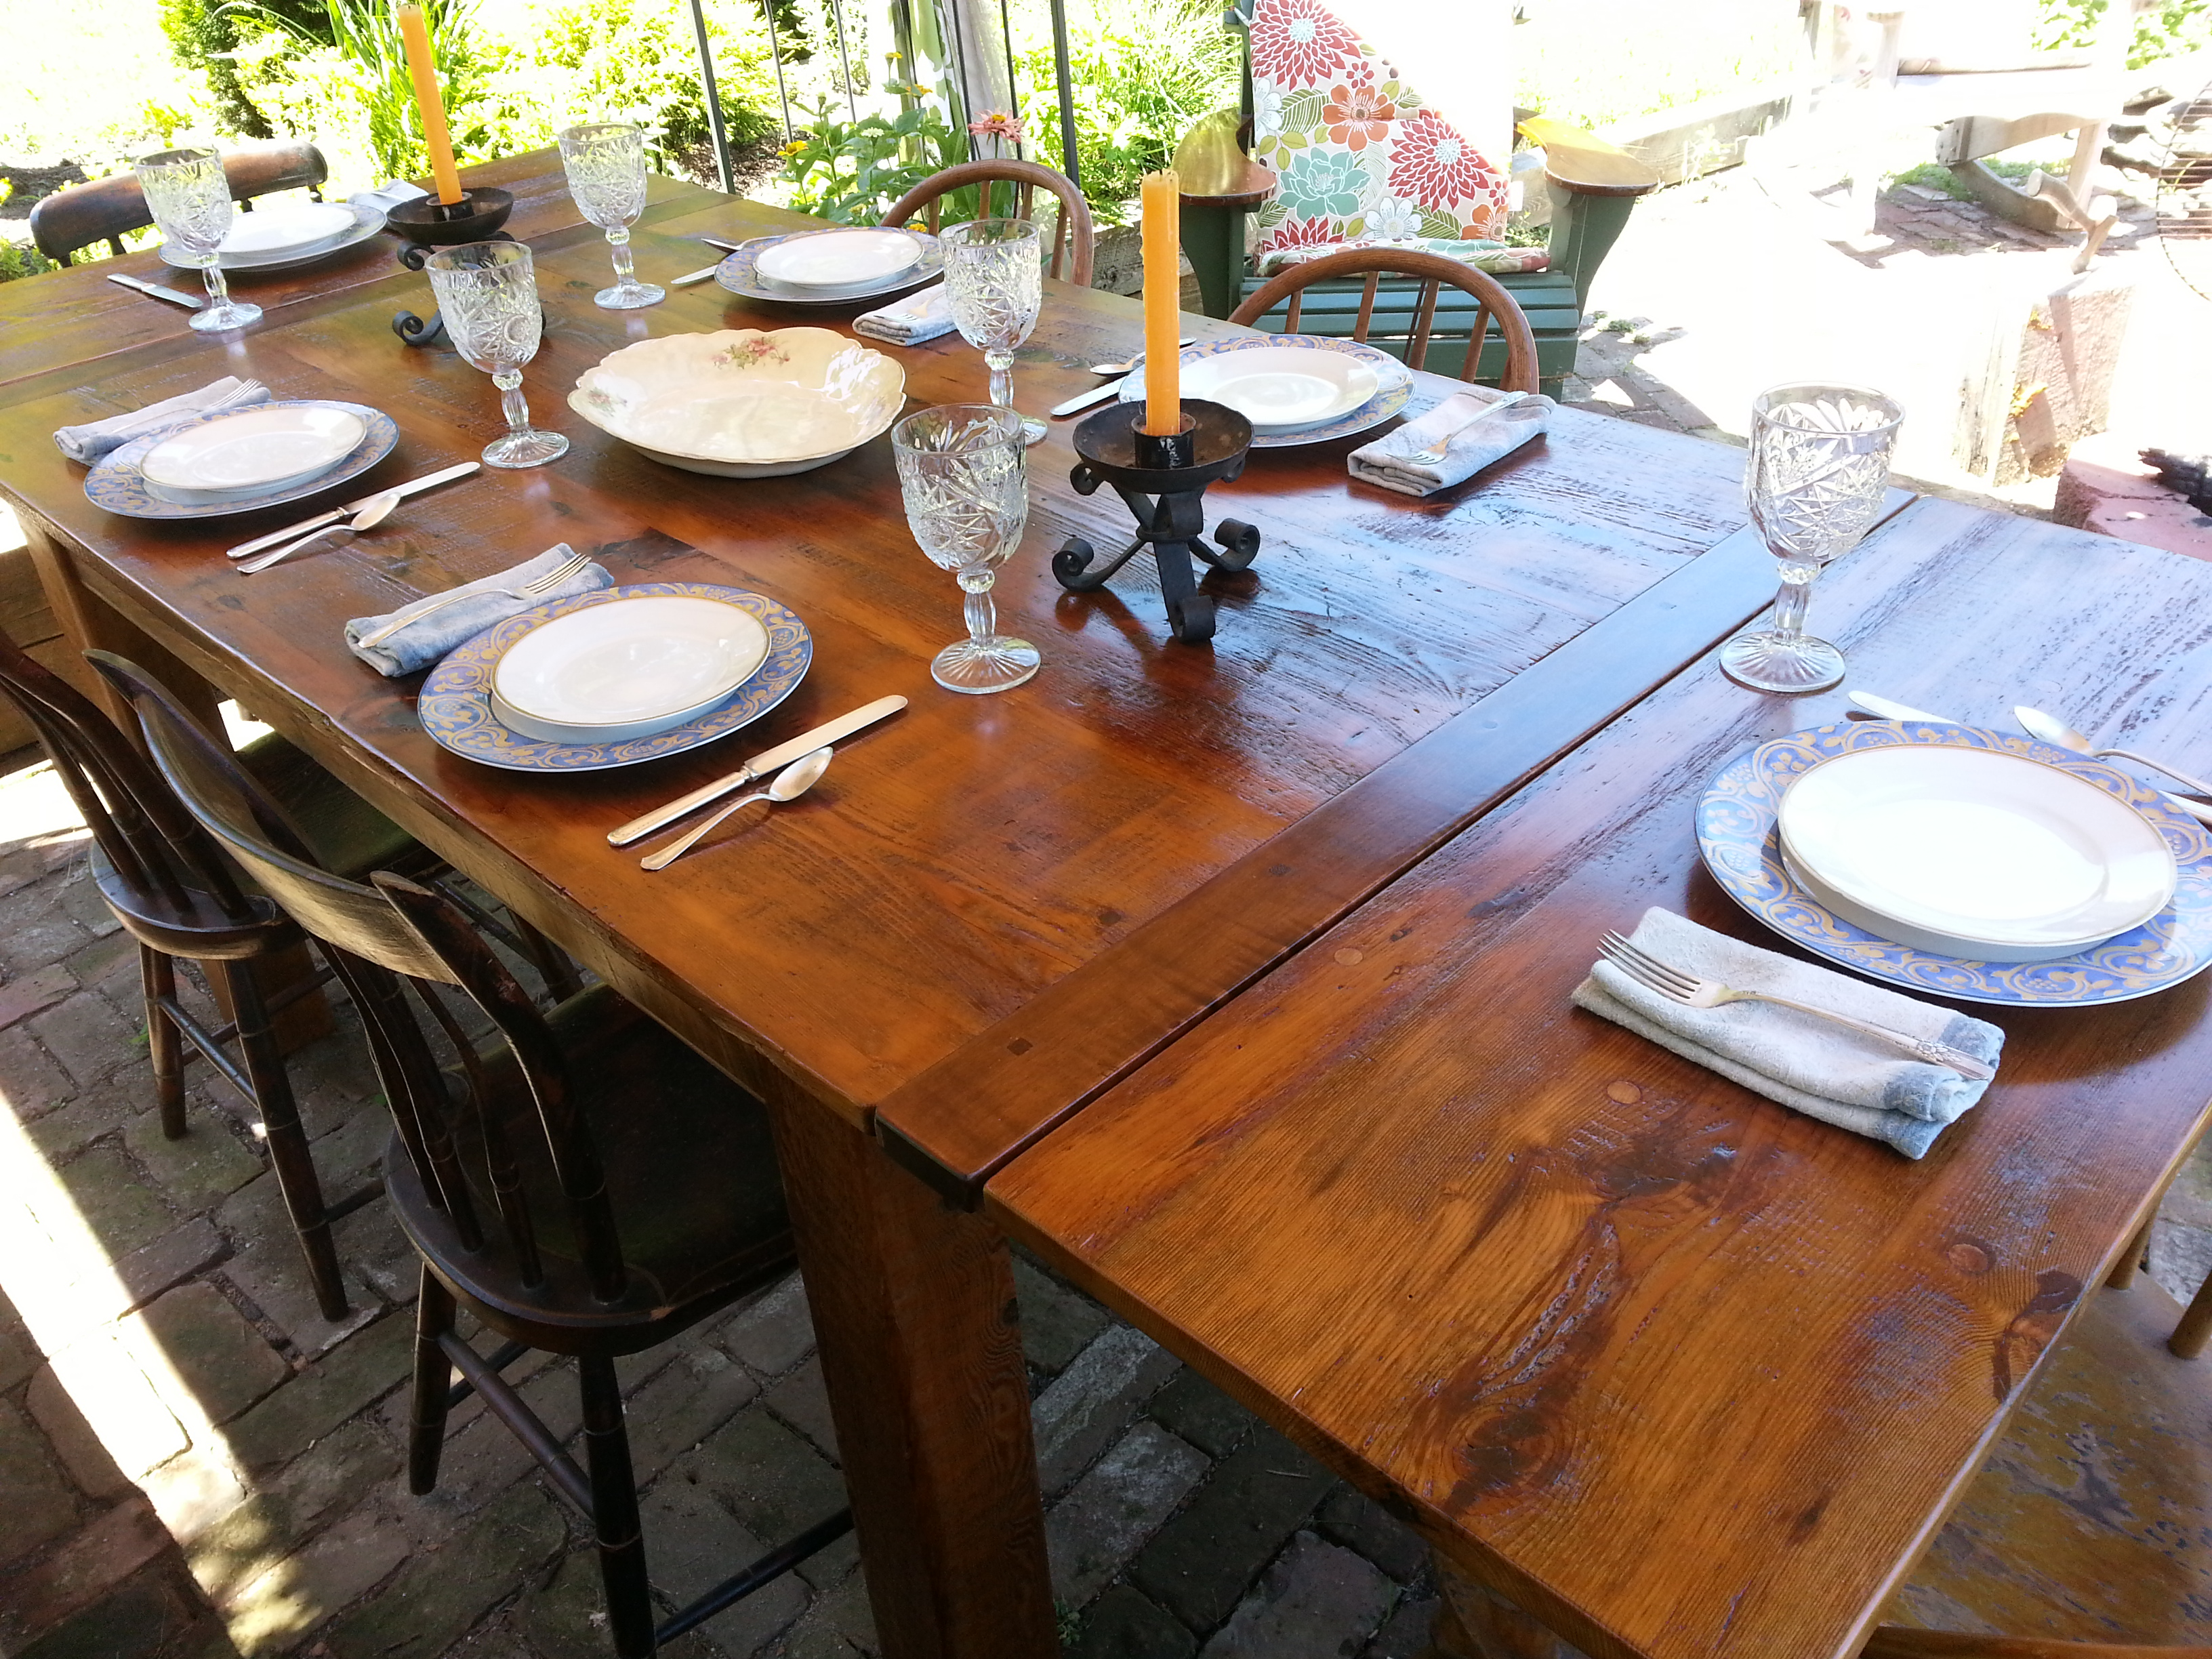 Reclaimed Fir farm table #4A